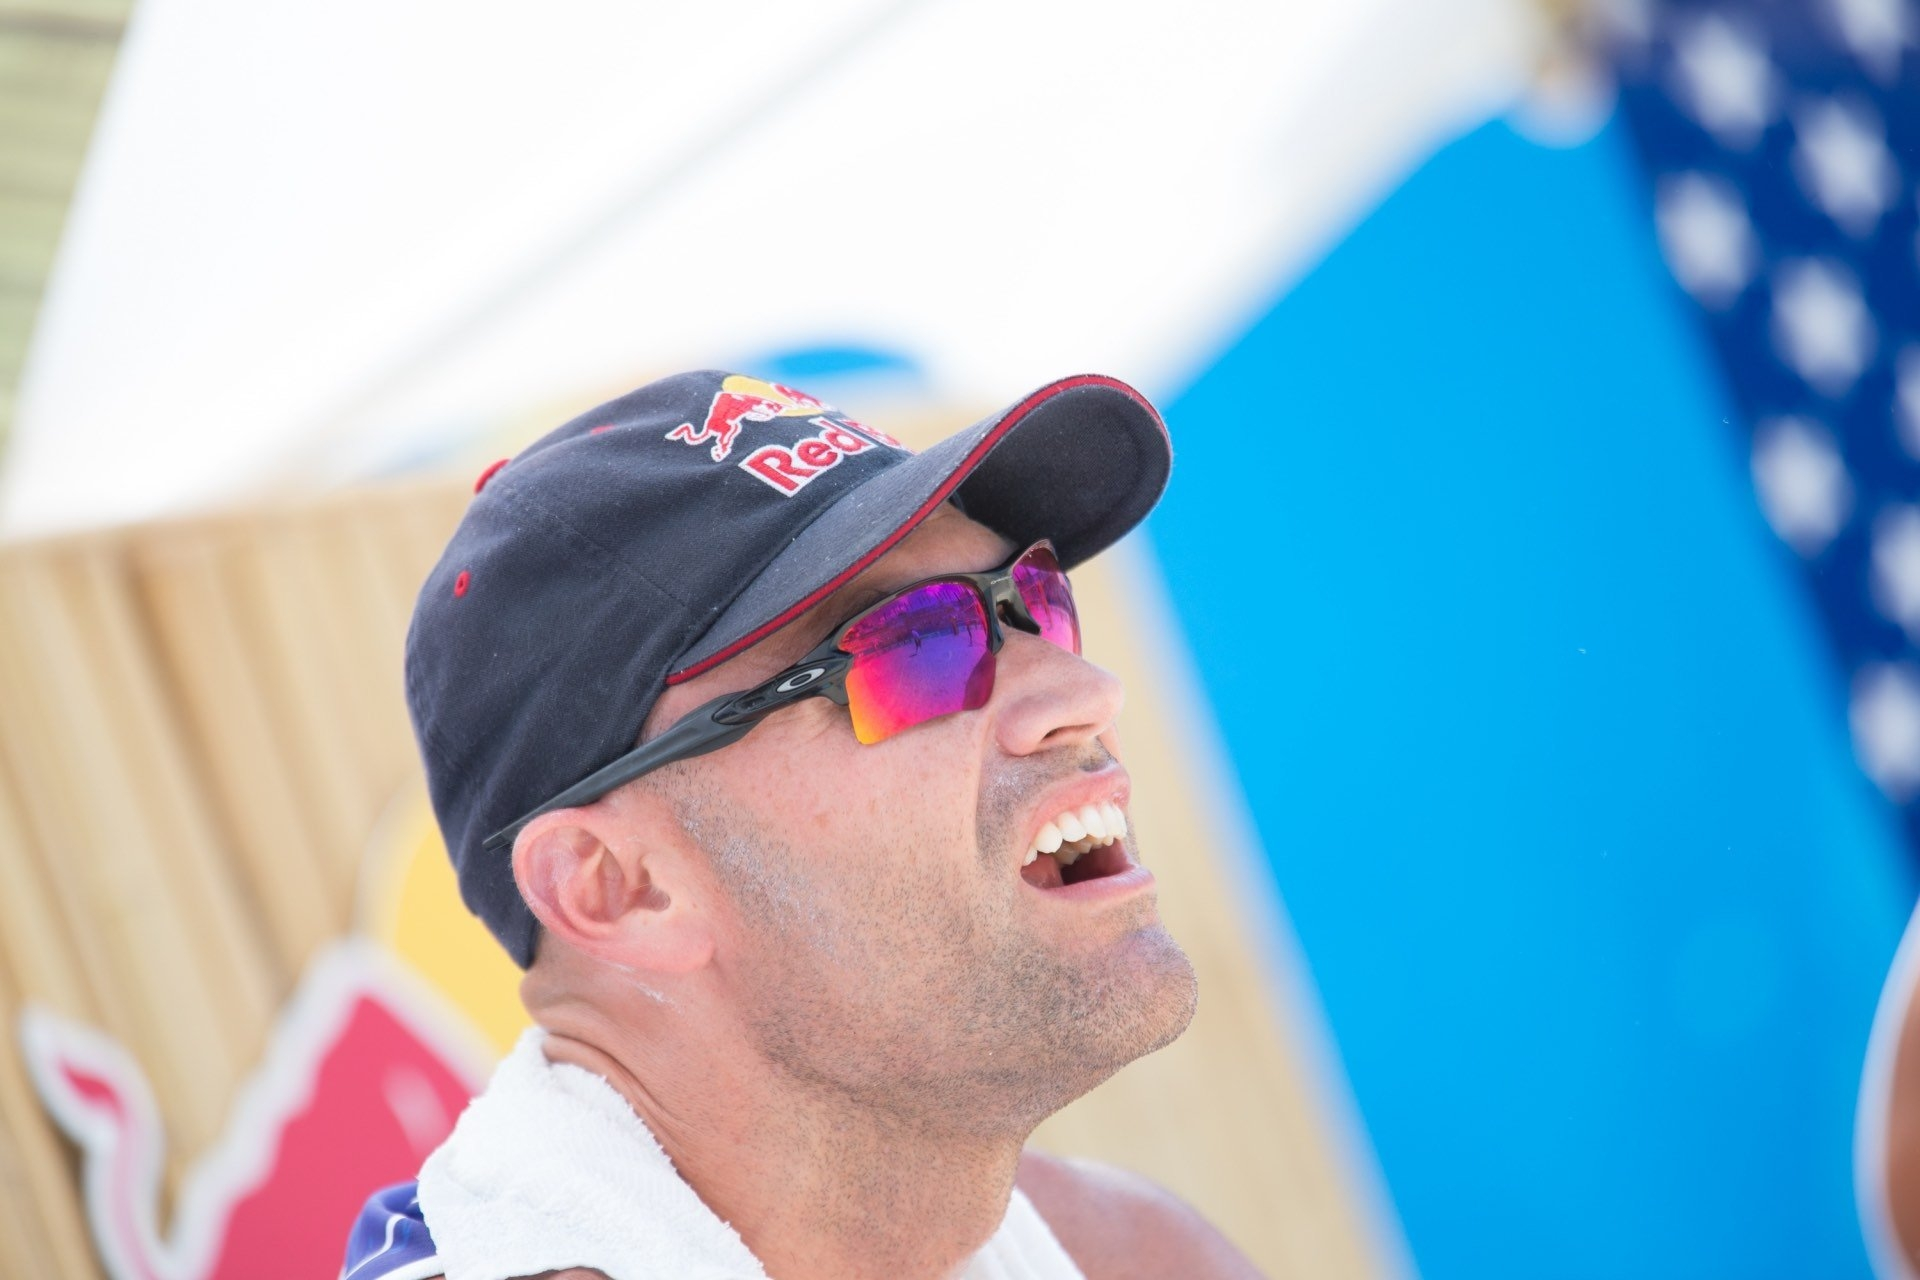 When was the last time I applied sunscreen? Doesn't matter… YOLO. Photocredit: Phil Dalhausser